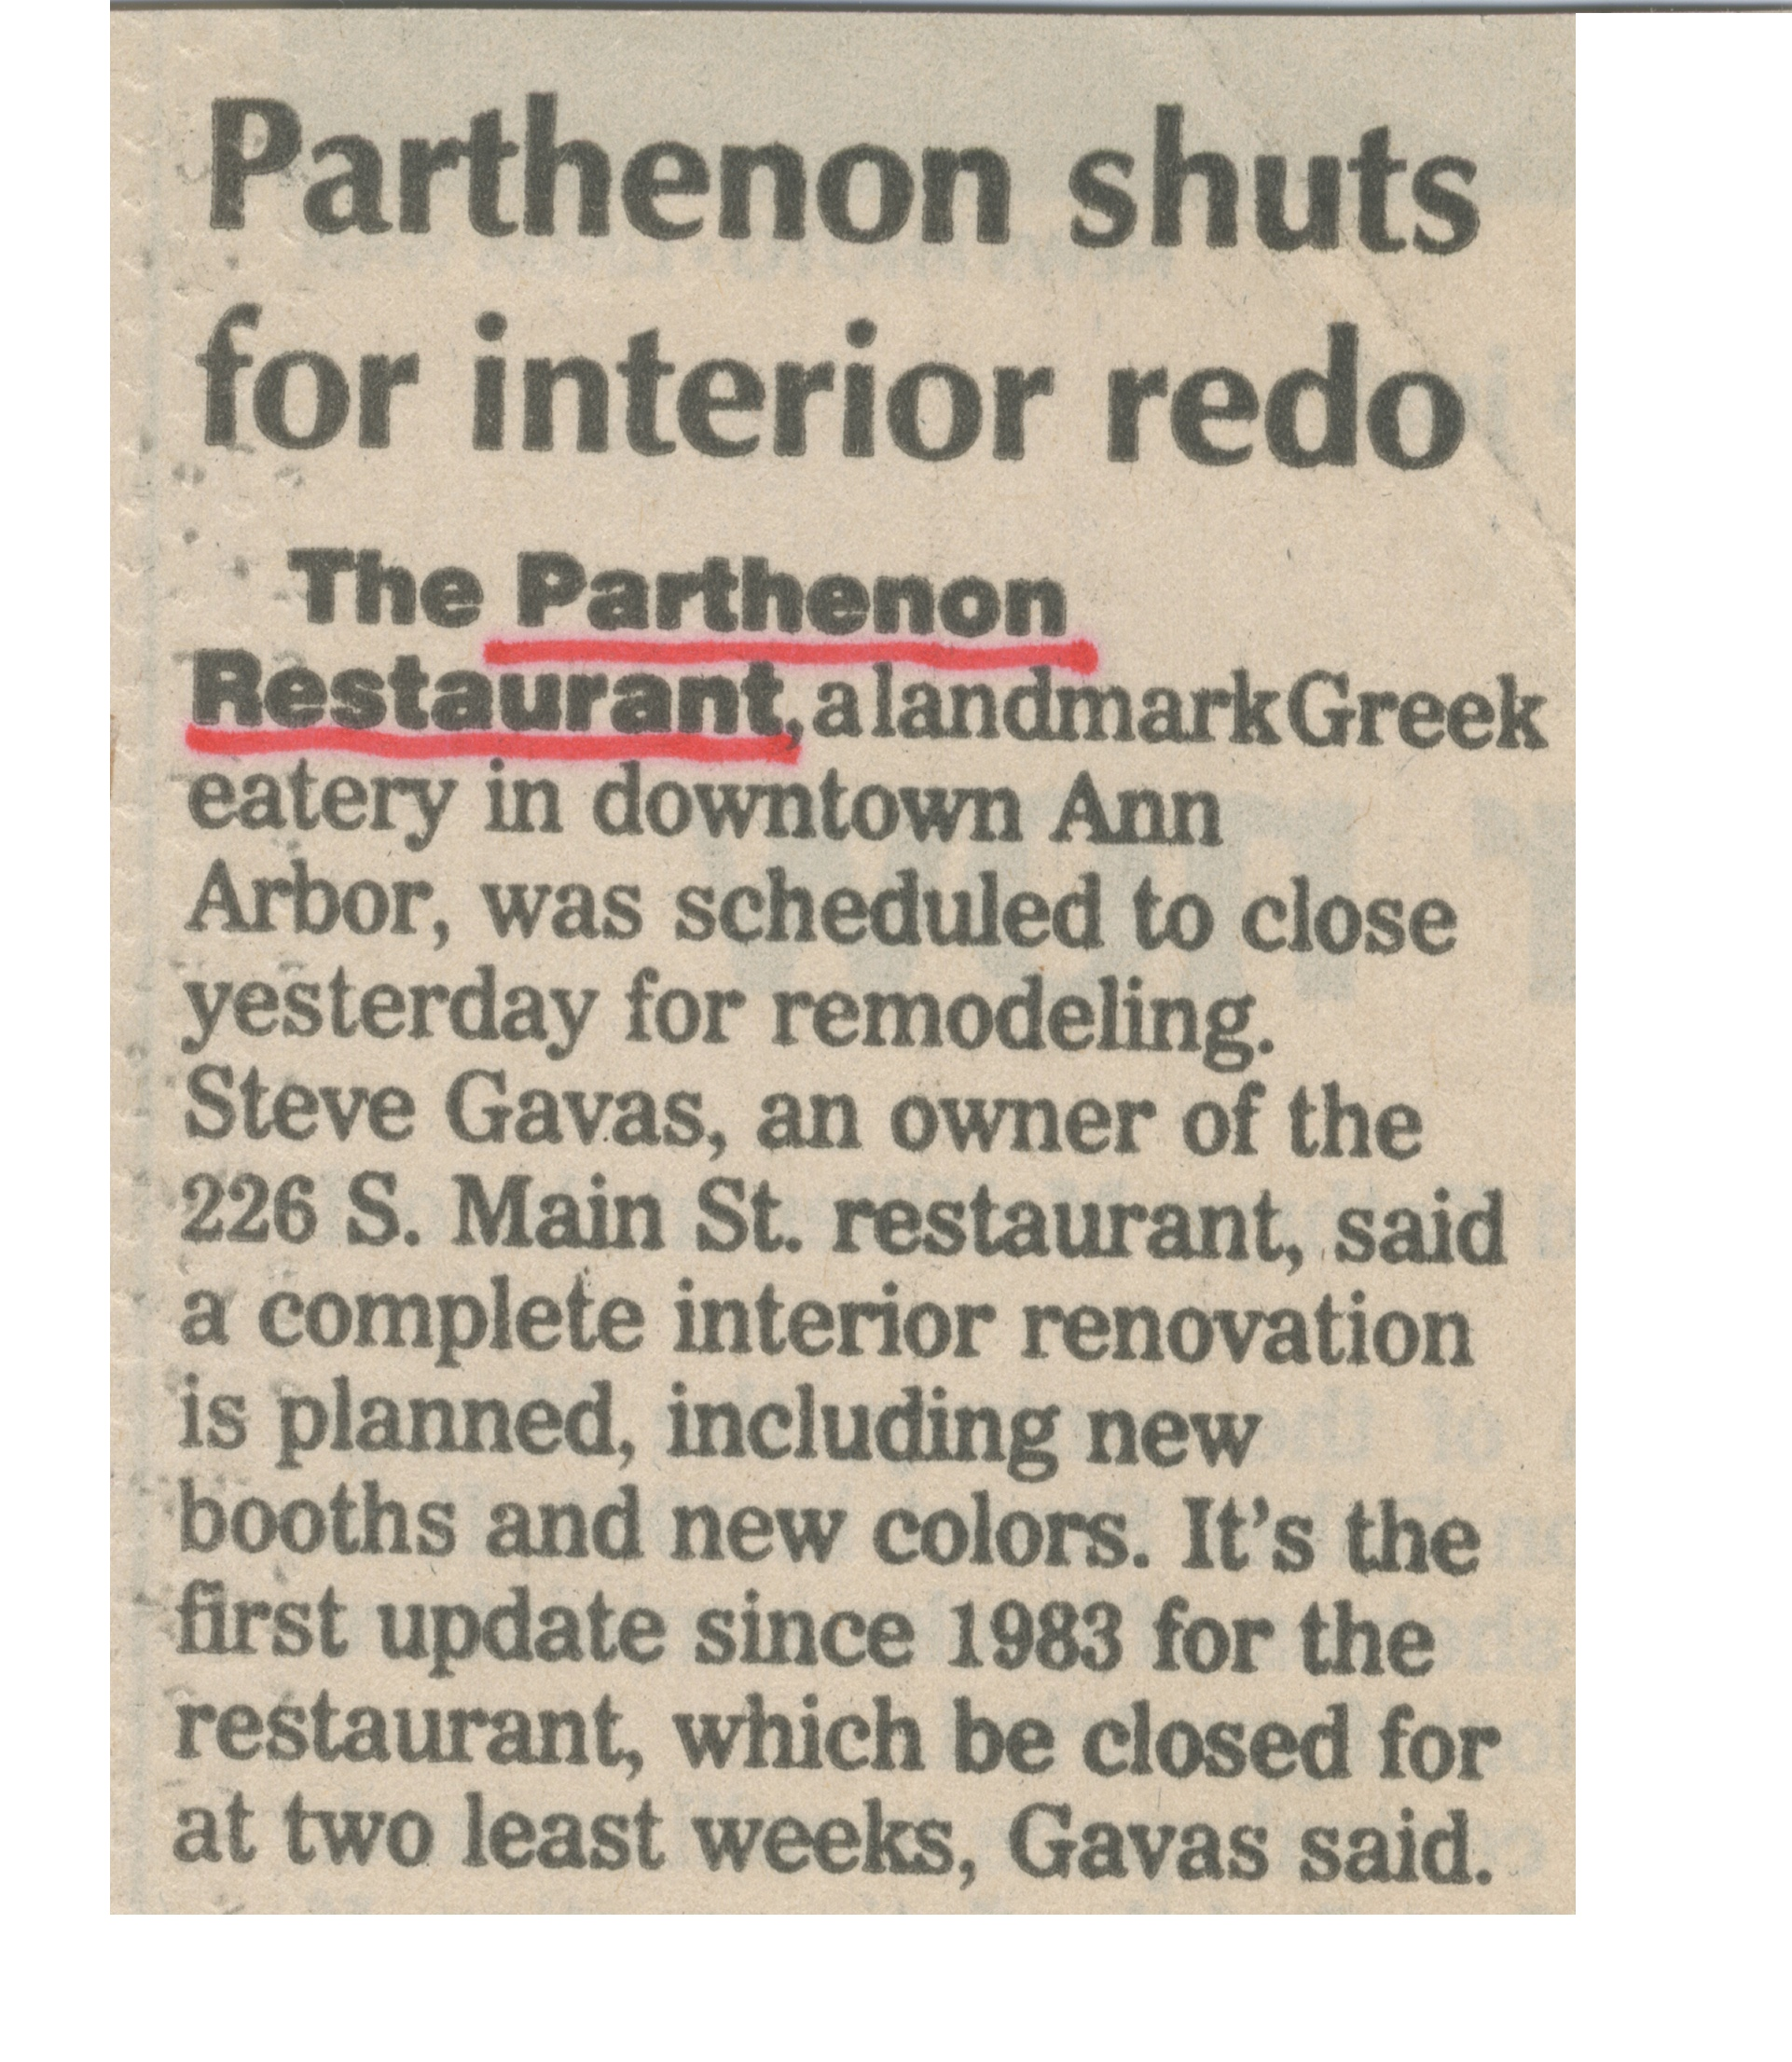 Parthenon Shuts for Interior Redo image